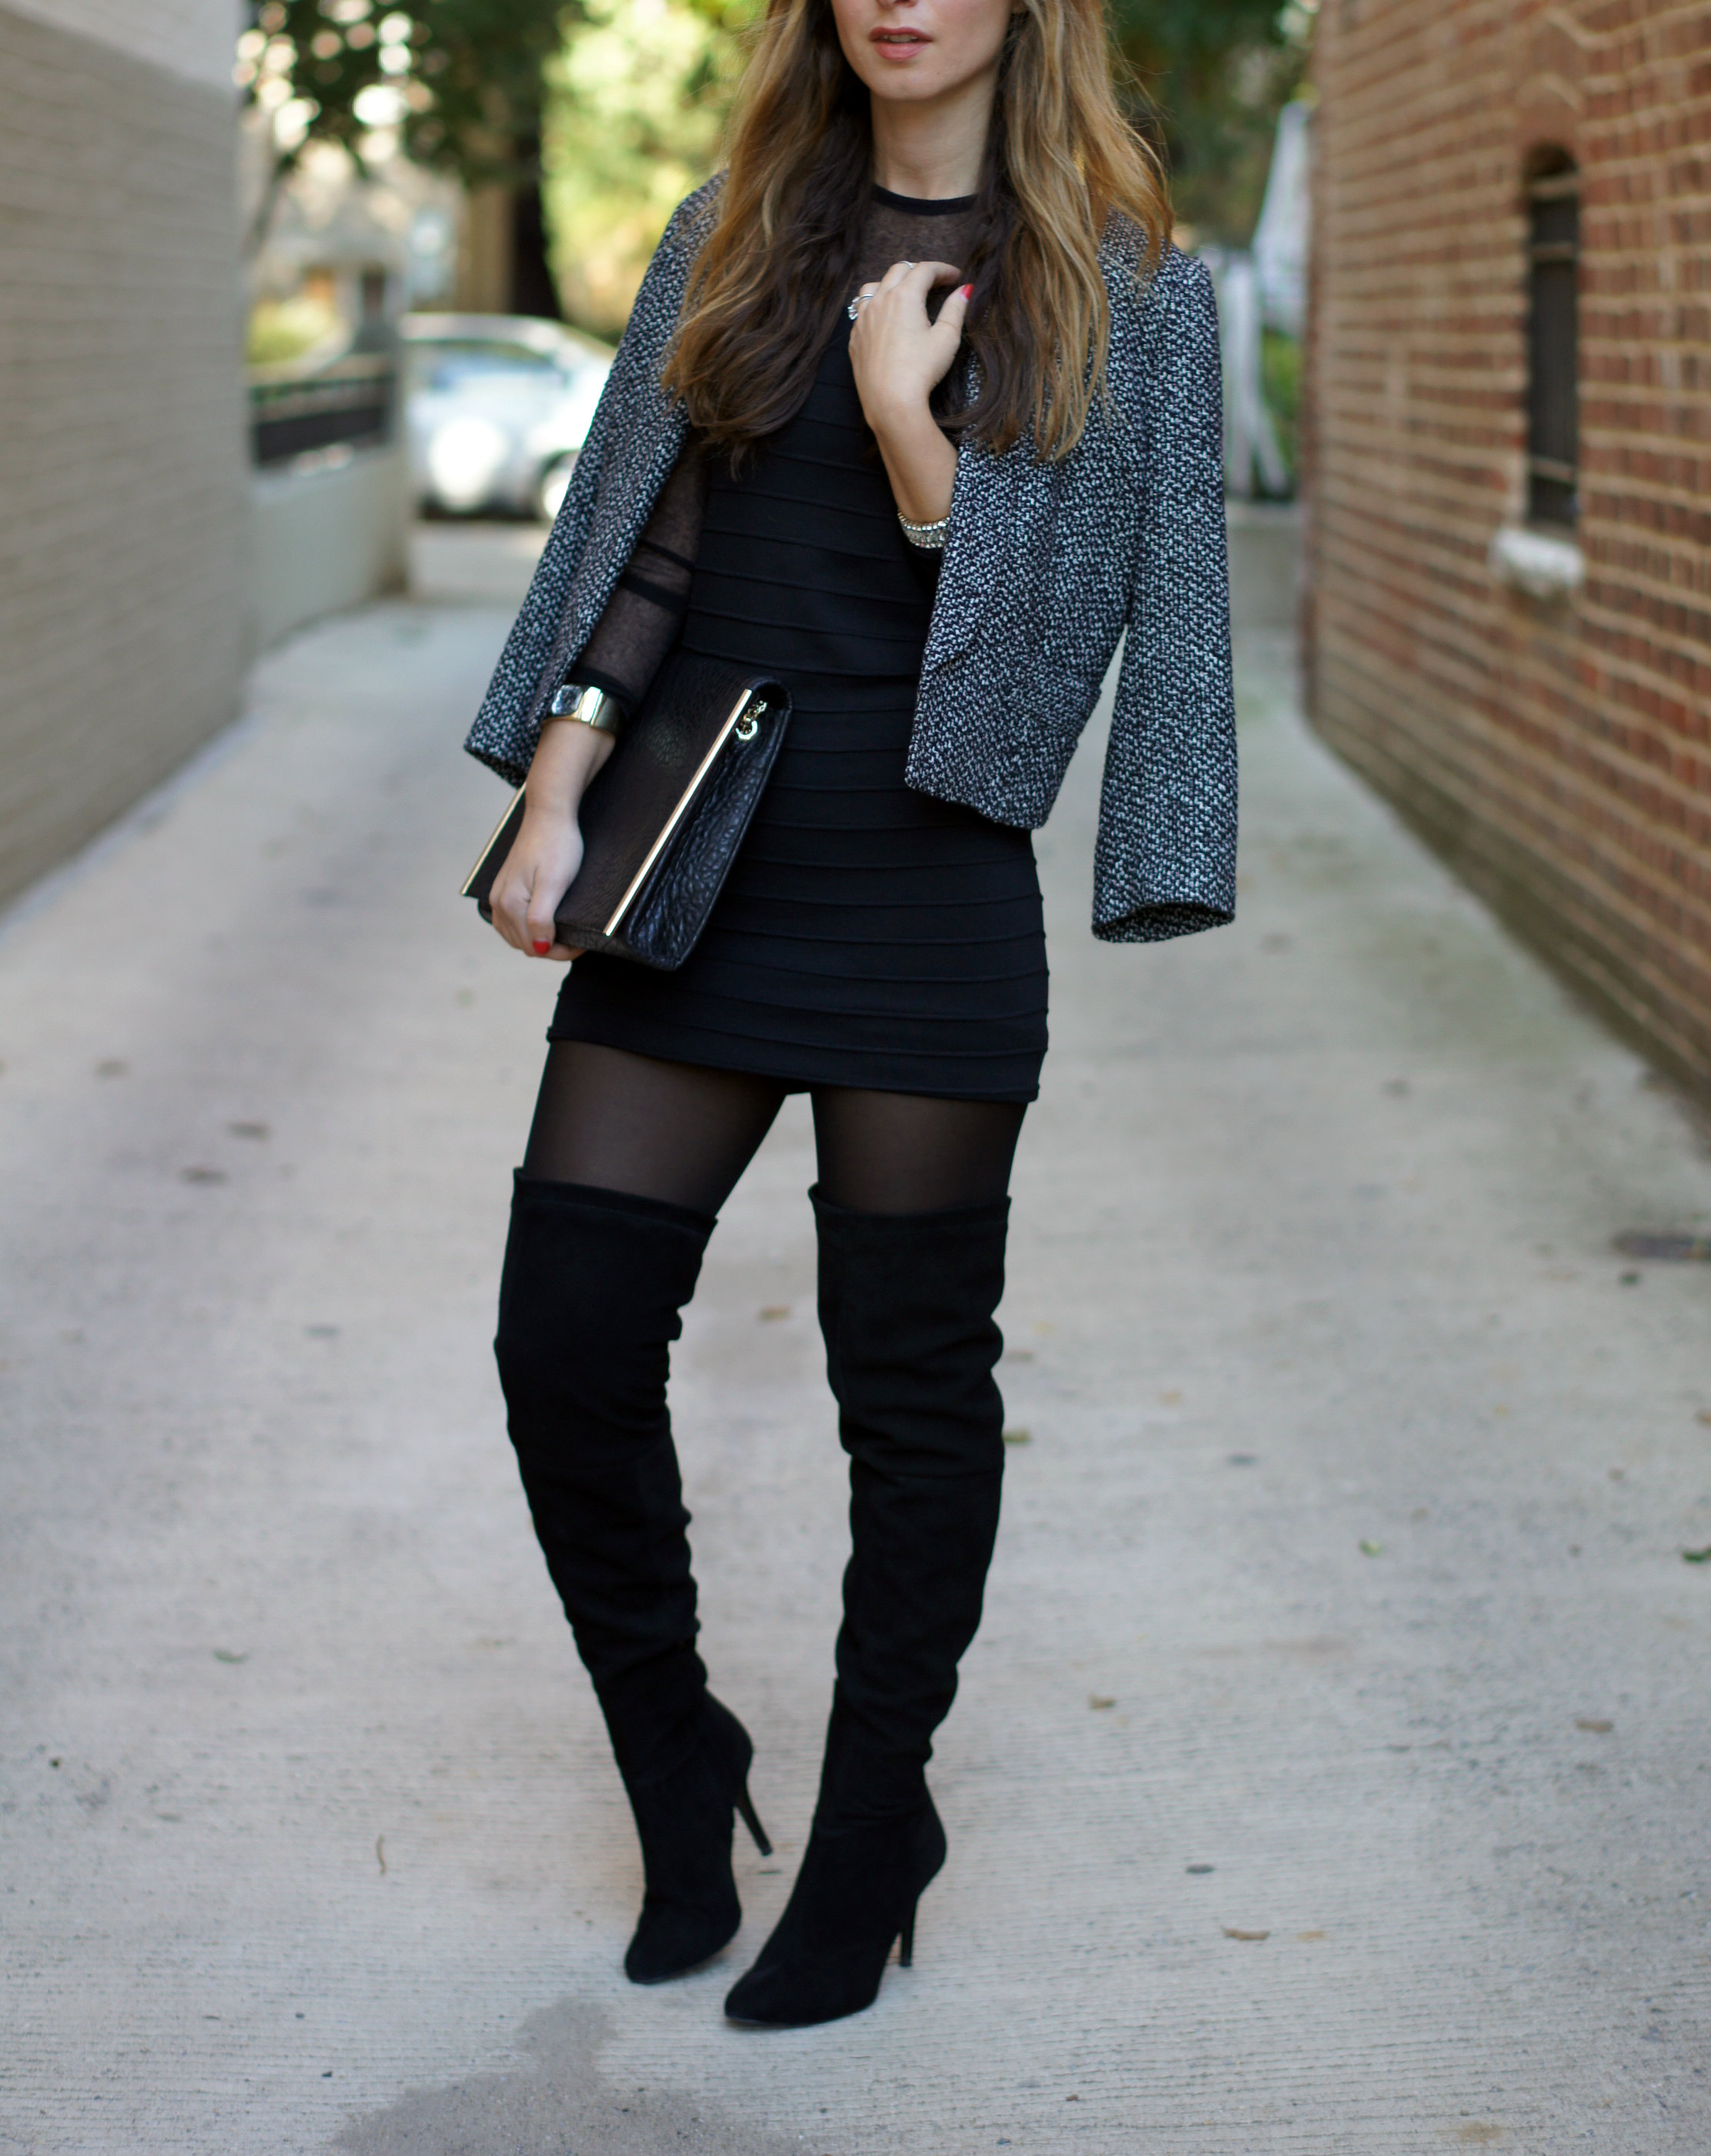 black dress, mini dress, long sleeve dress, knee high boots, over the knee boots, jewelry, j.crew, uterque, zara, H&M, cropped blazer, NYE look, style, DC